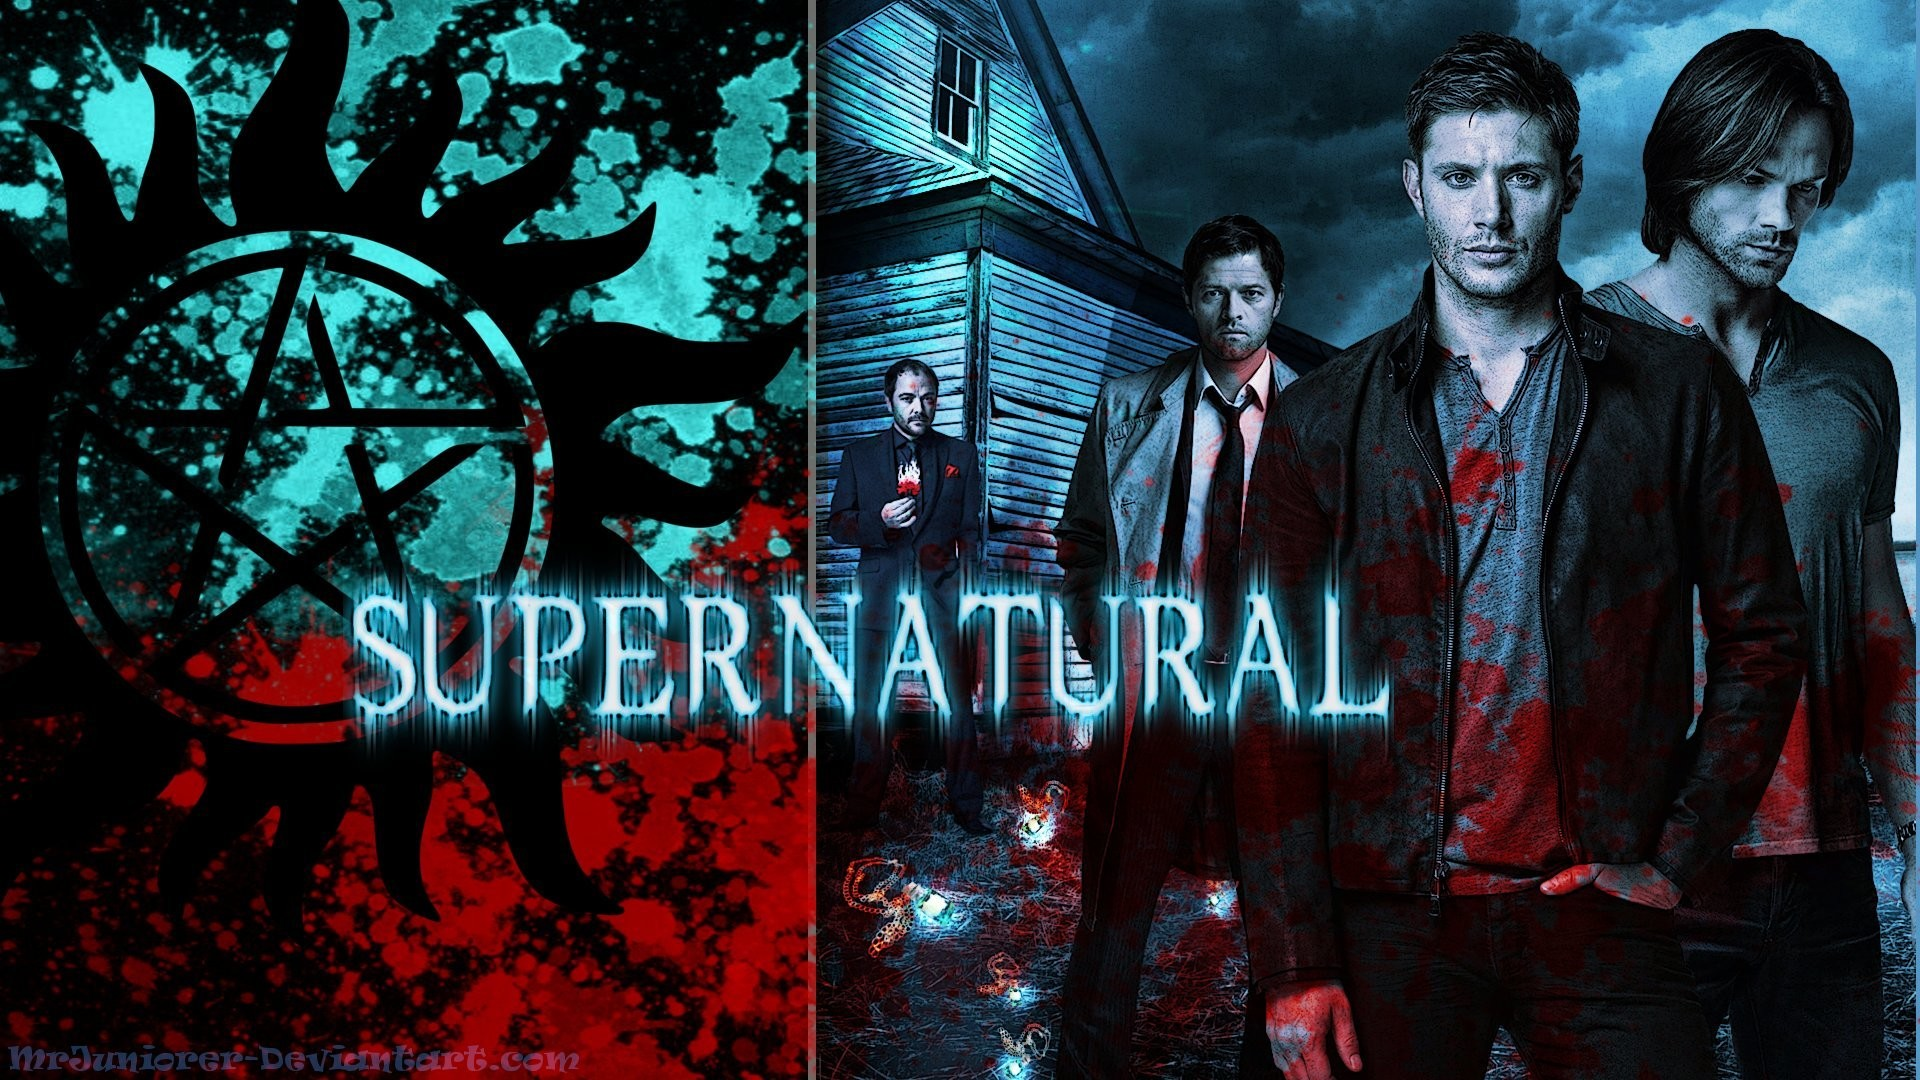 1920x1080 Supernatural Wallpapers High Resolution and Quality Download